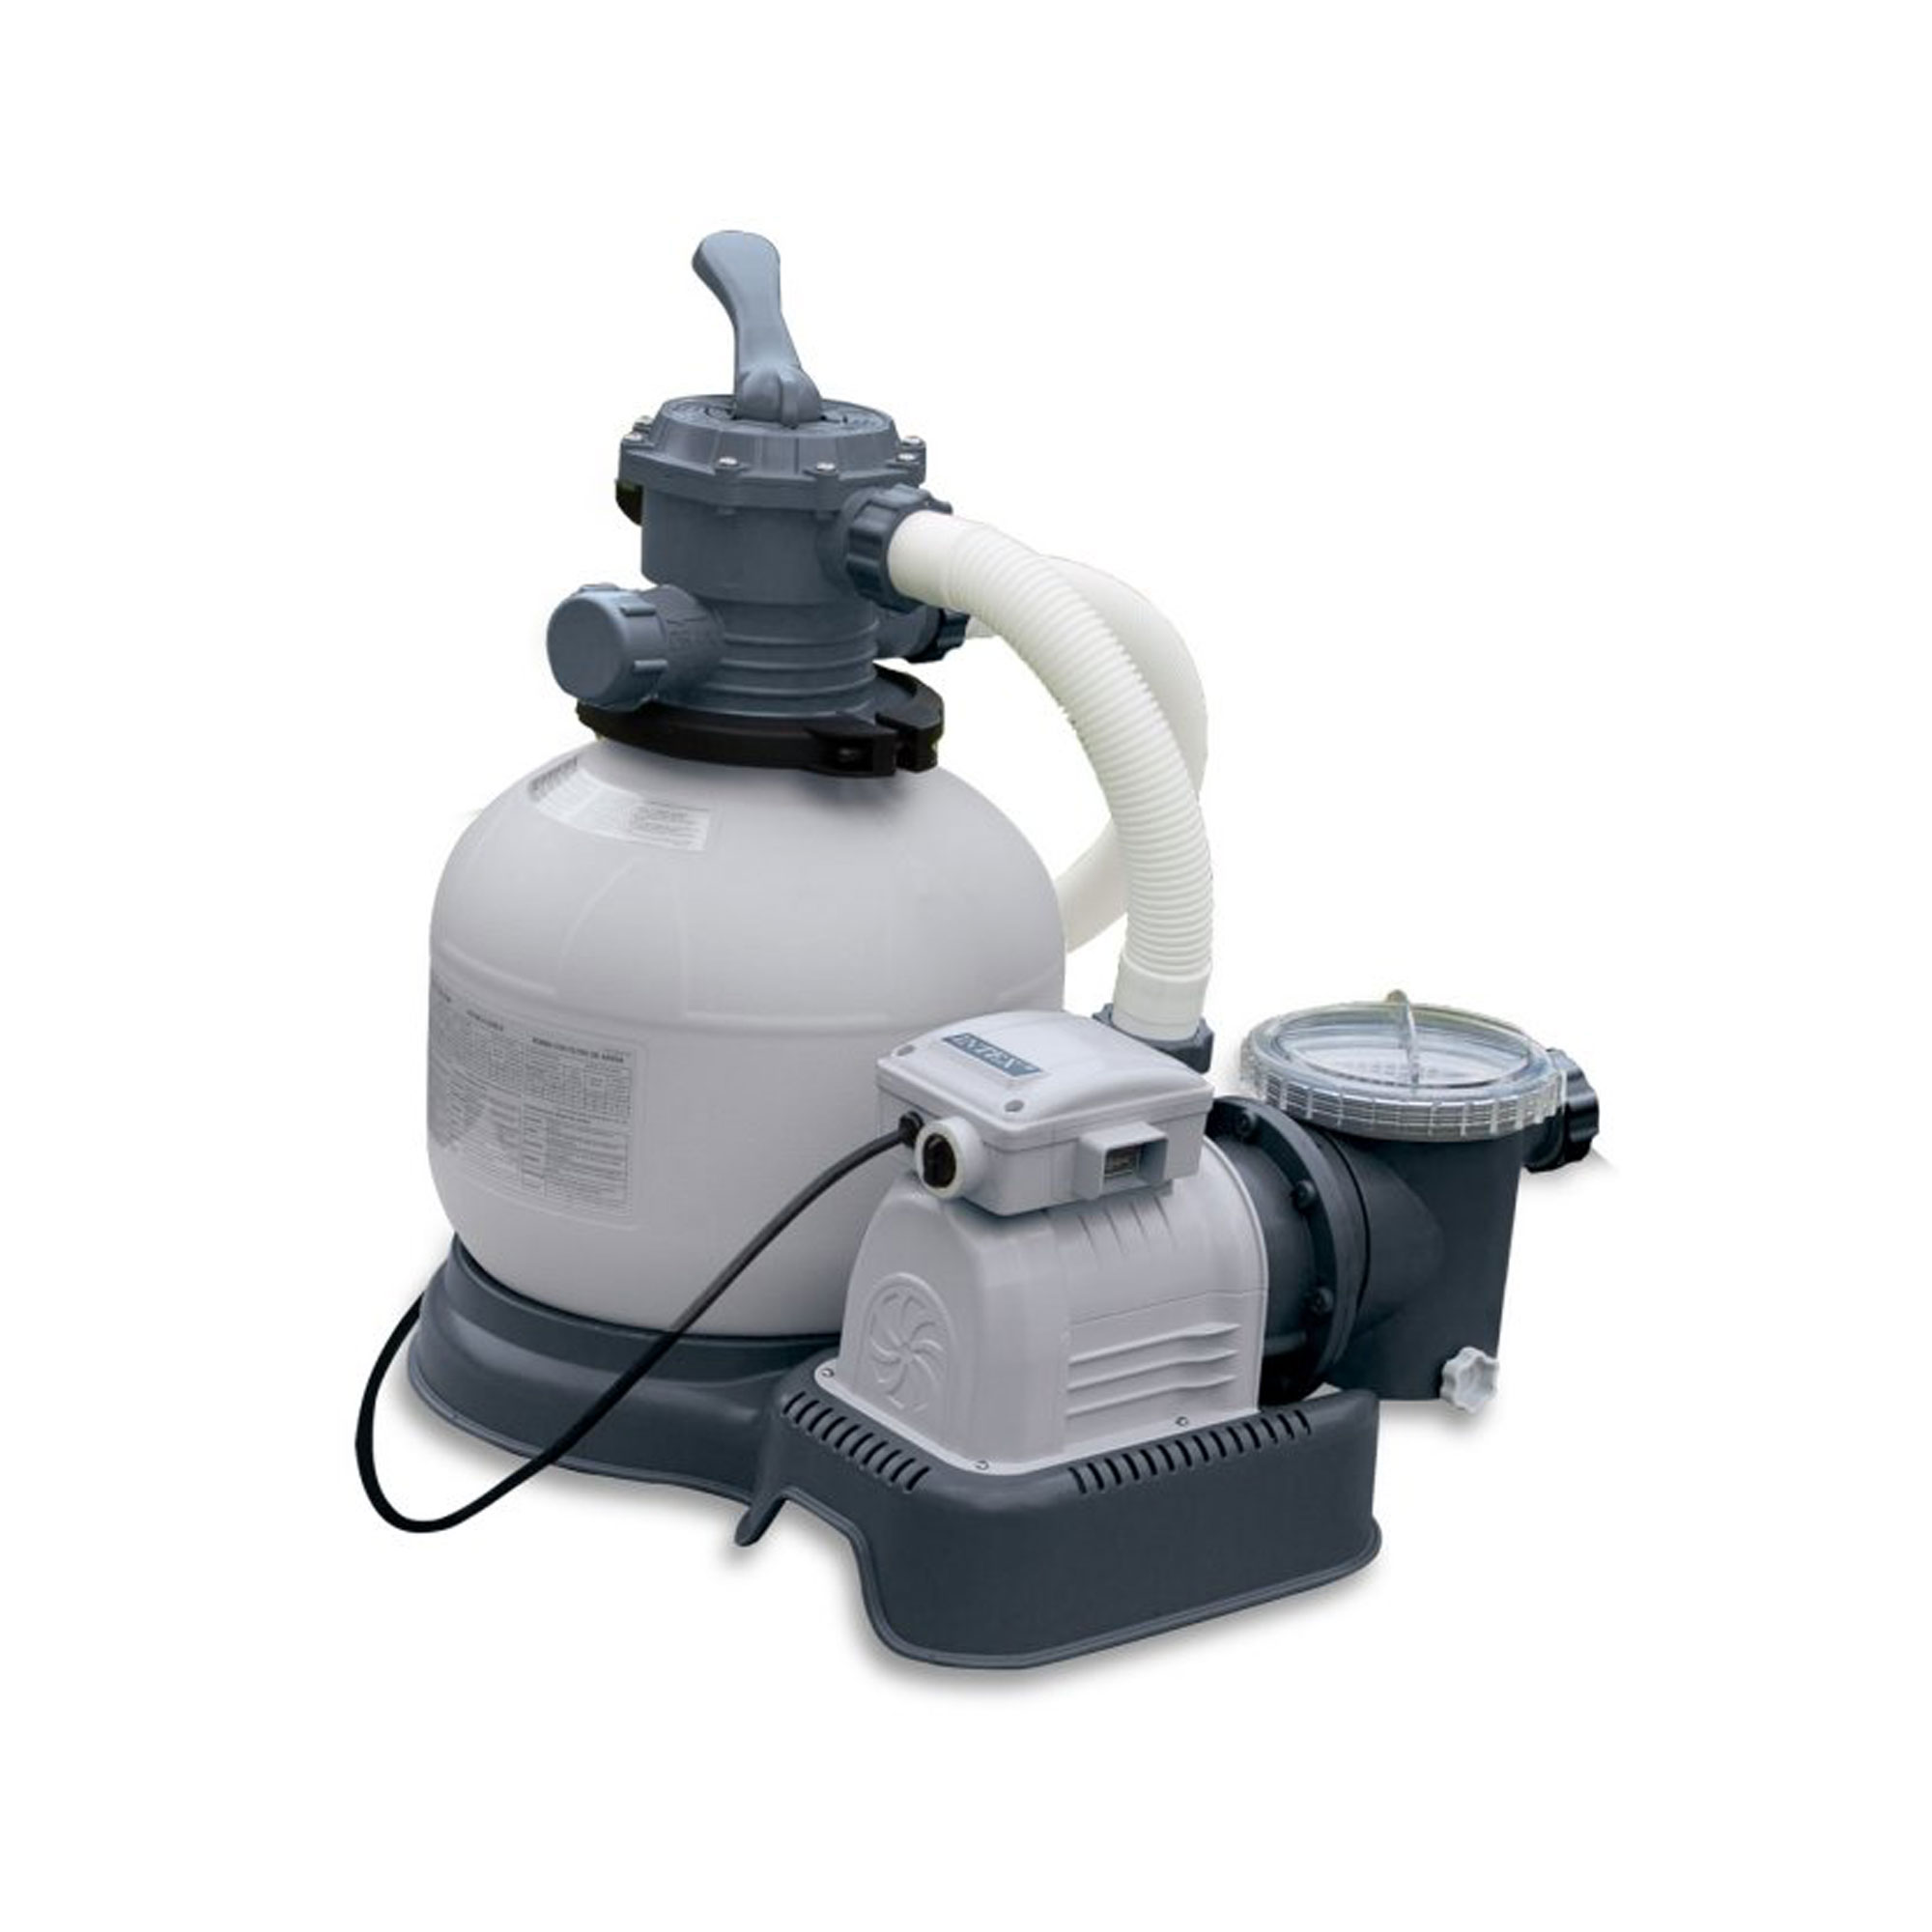 Pool Filter Pump Pressure Too High Details About Intex Krystal Clear 2800 Gph Above Ground Pool Sand Filter Pump 28647eg